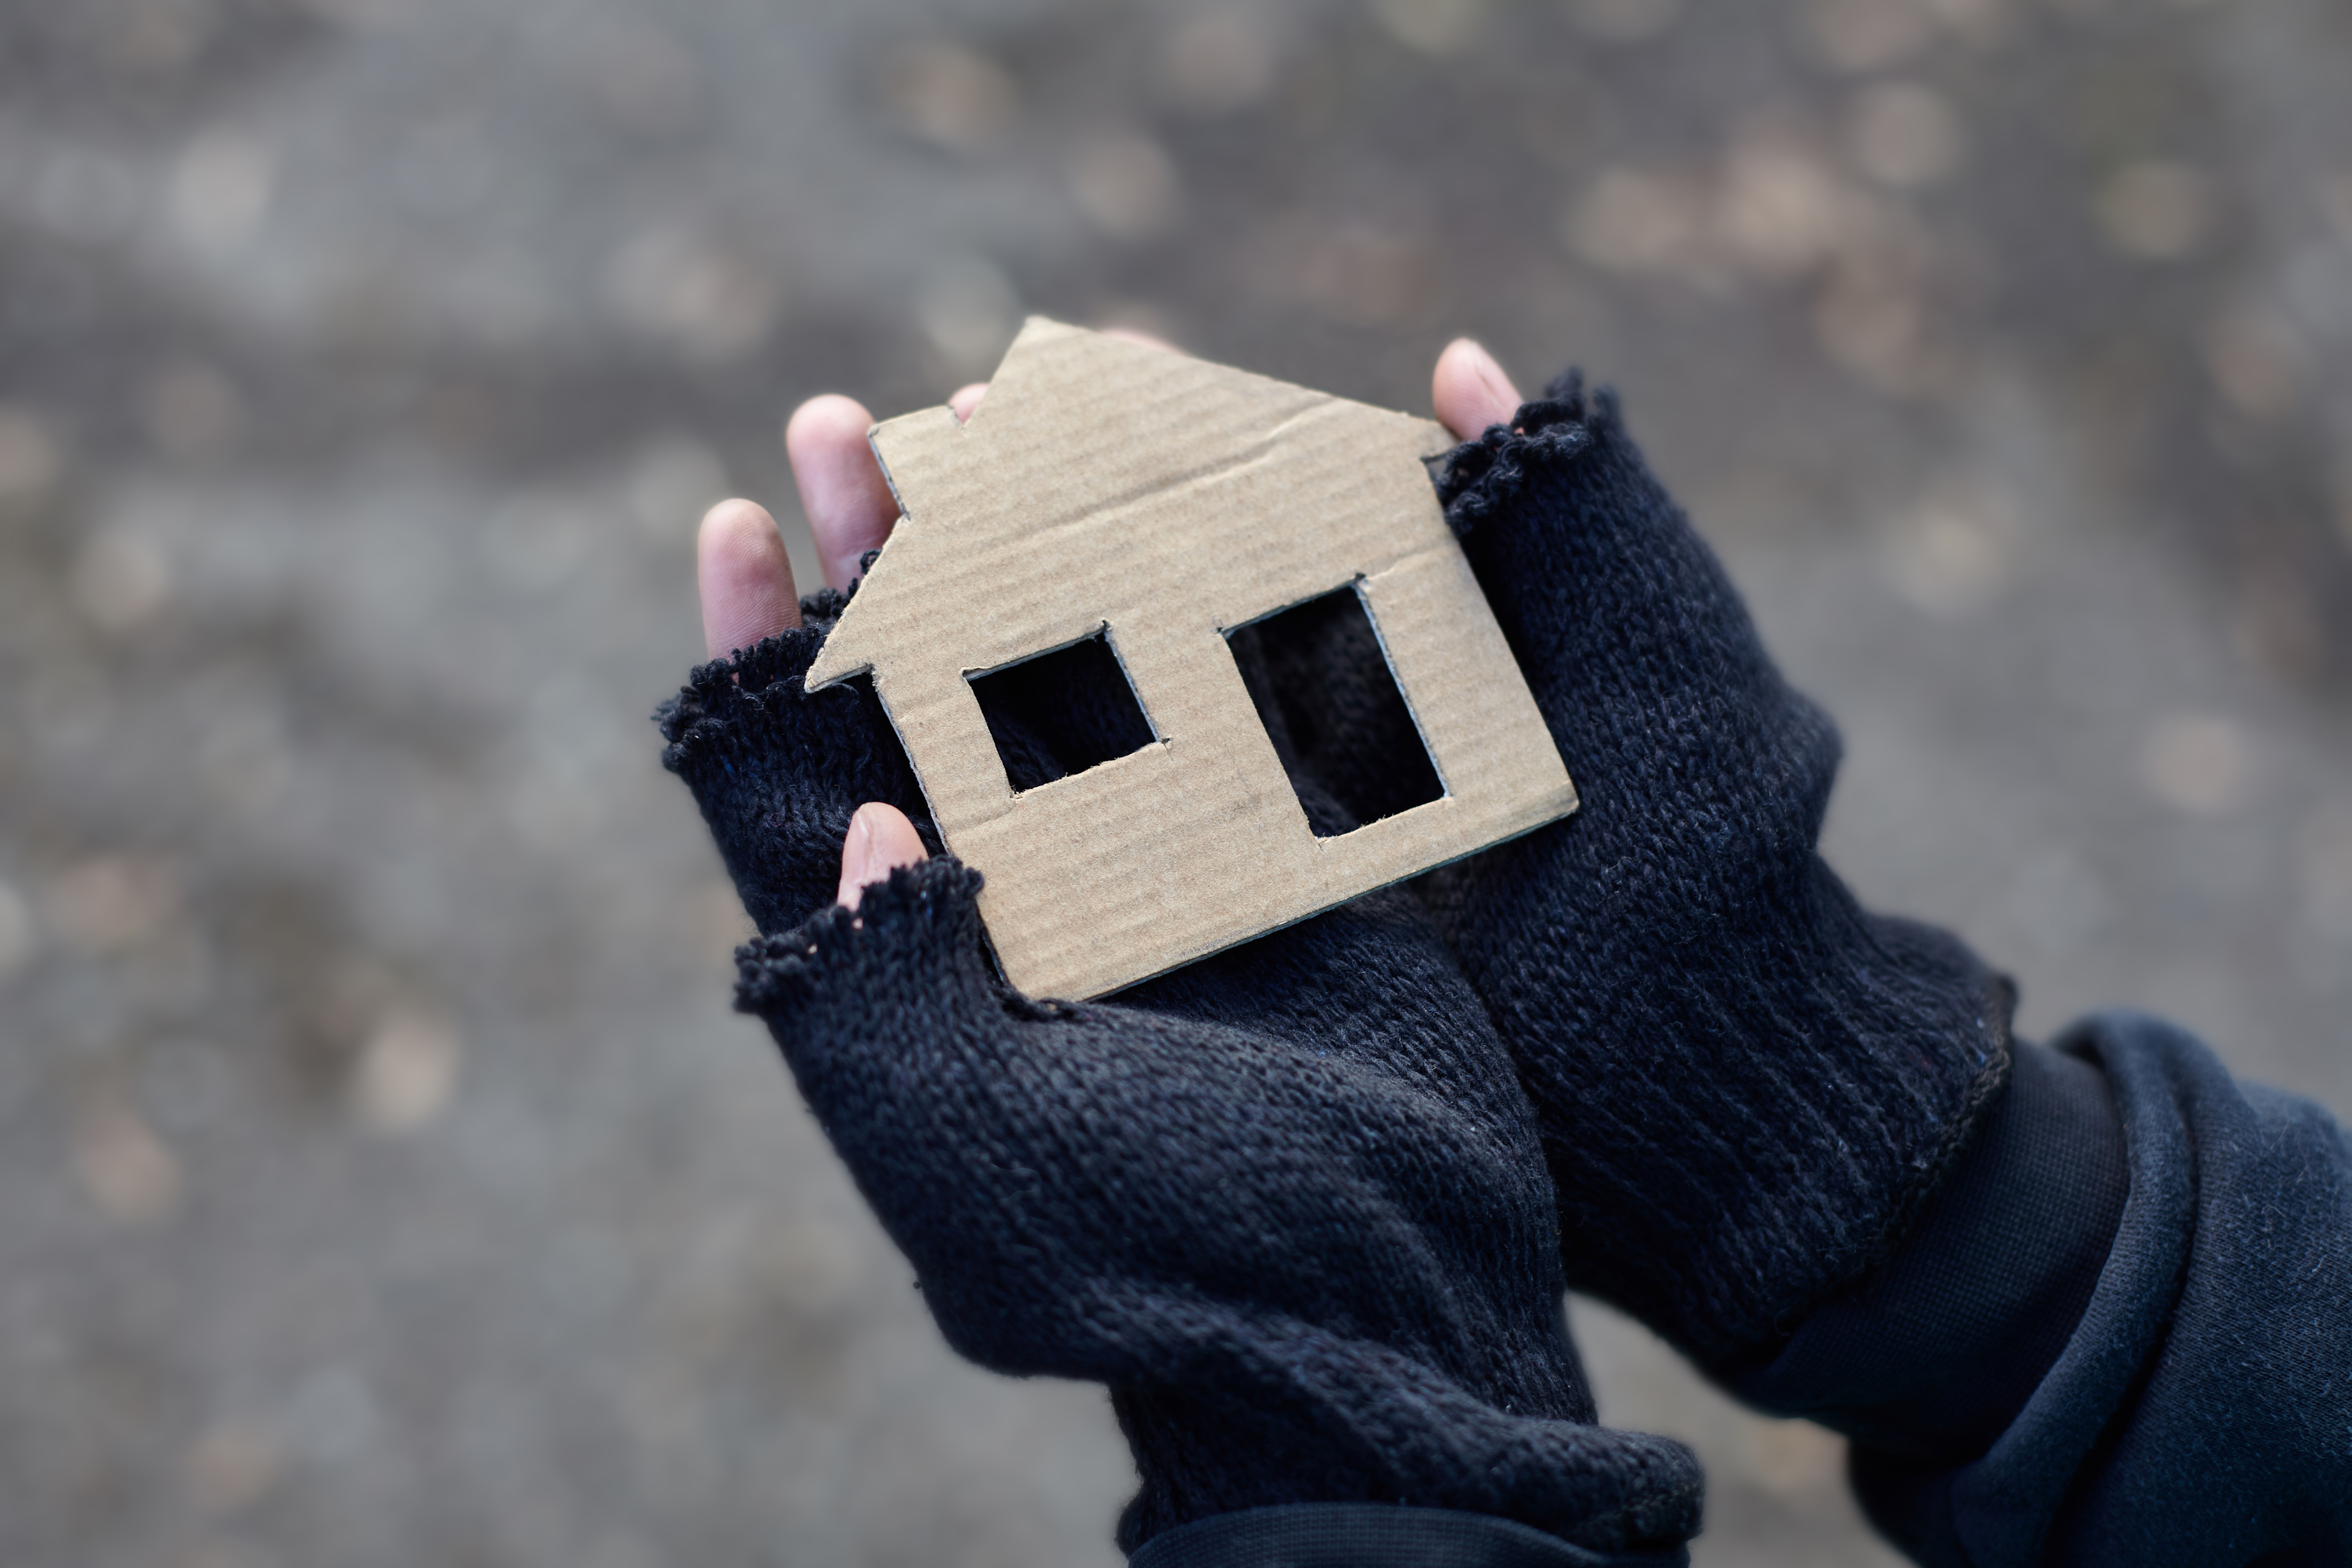 Depicted is a person wanting a home. SHUTTERSTOCK/ Roman Bodnarchuk